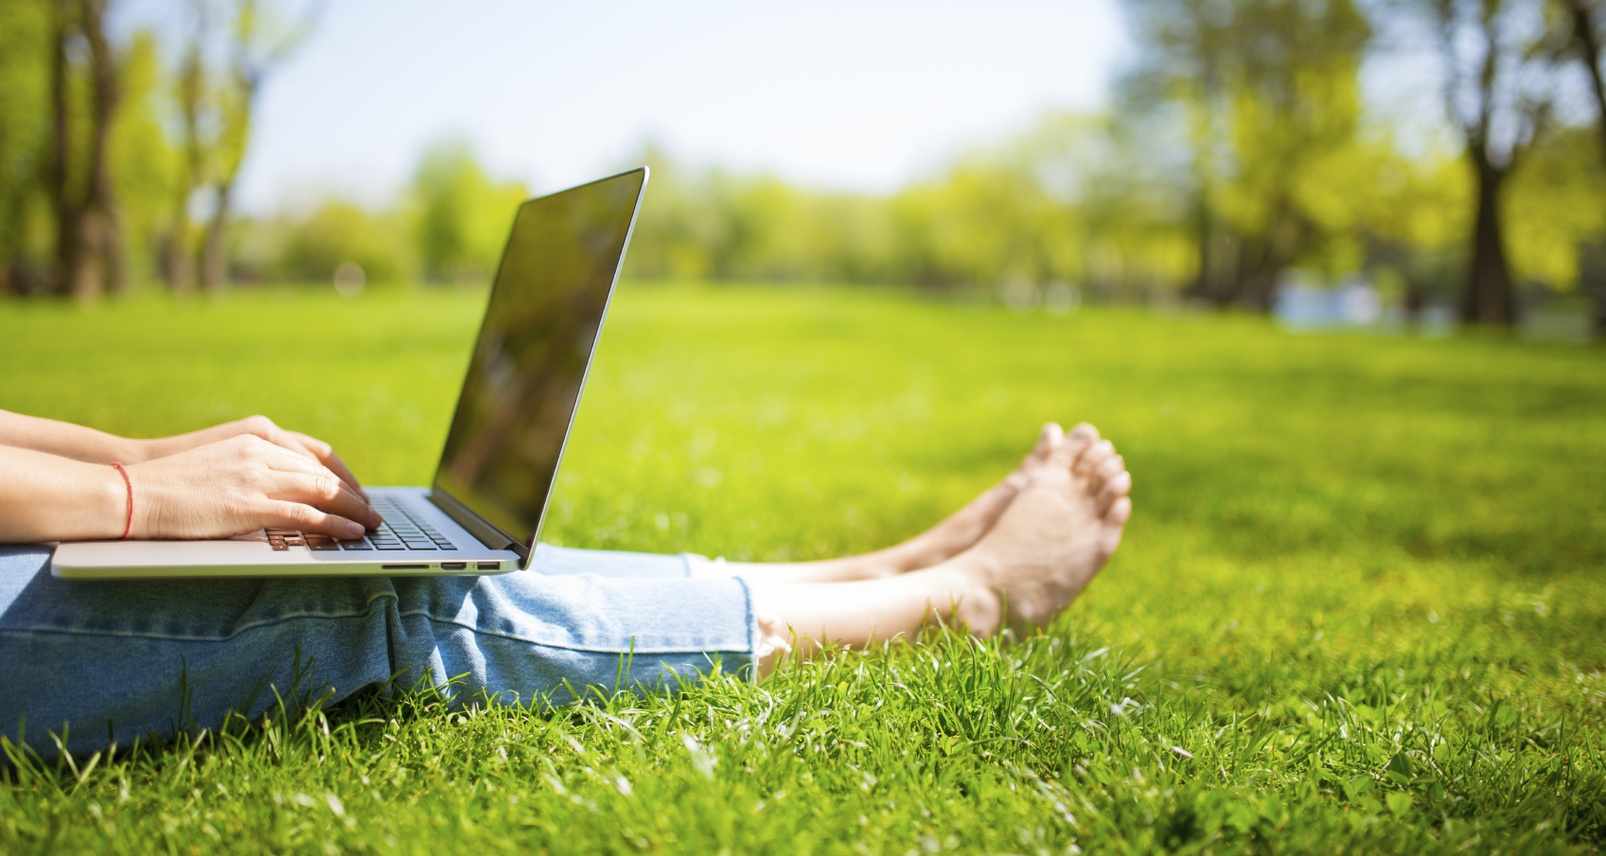 Woman working on laptop computer outside